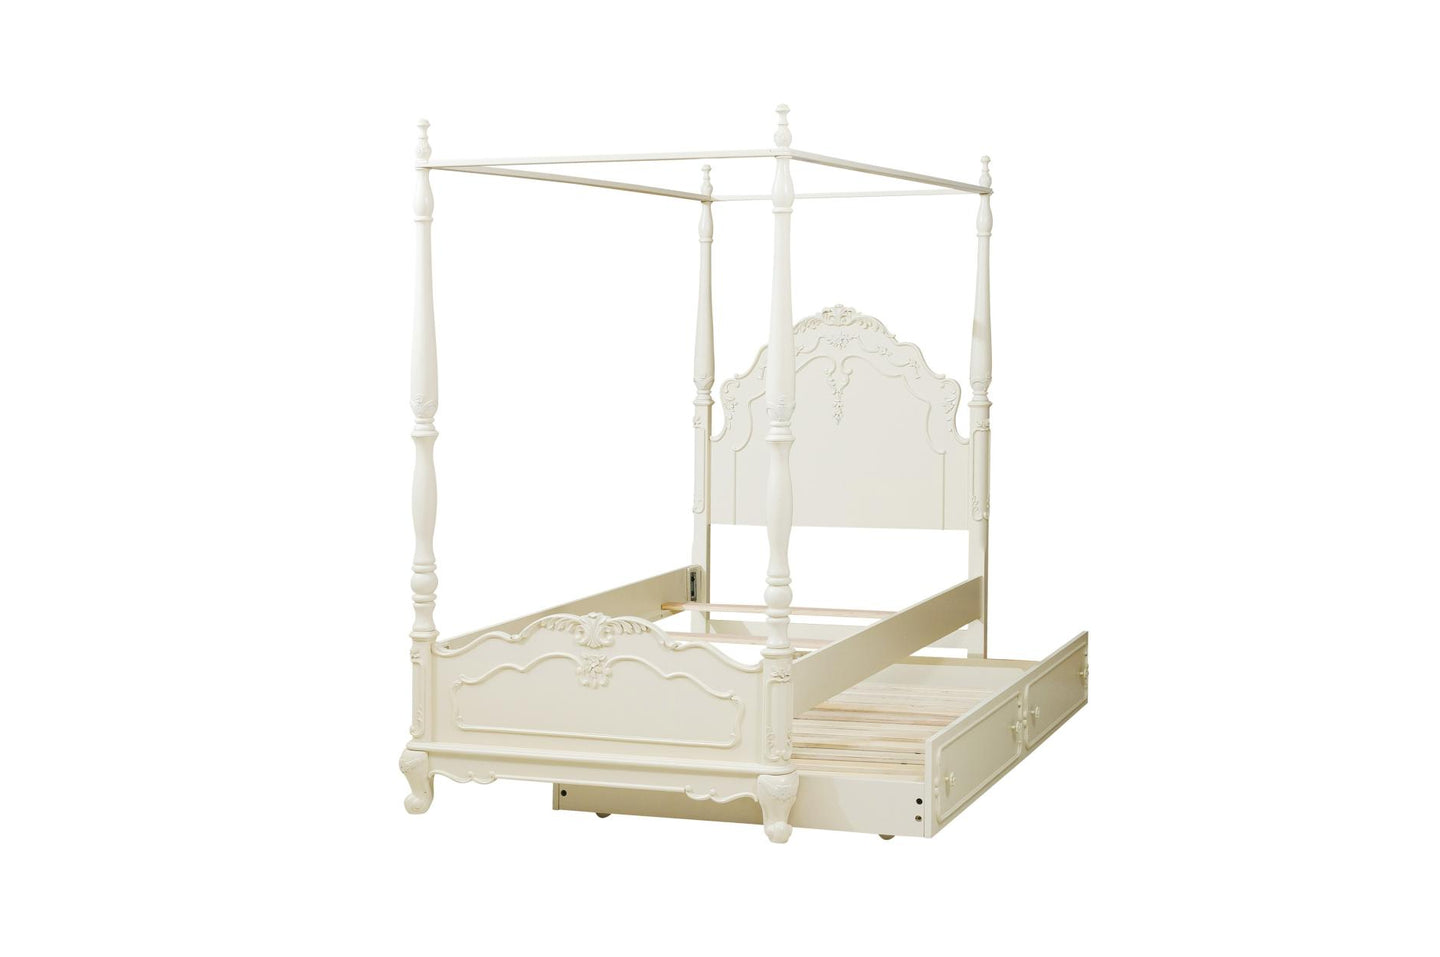 Homelegance Cinderella White Wood Finish Twin Canopy Bed With Trundle